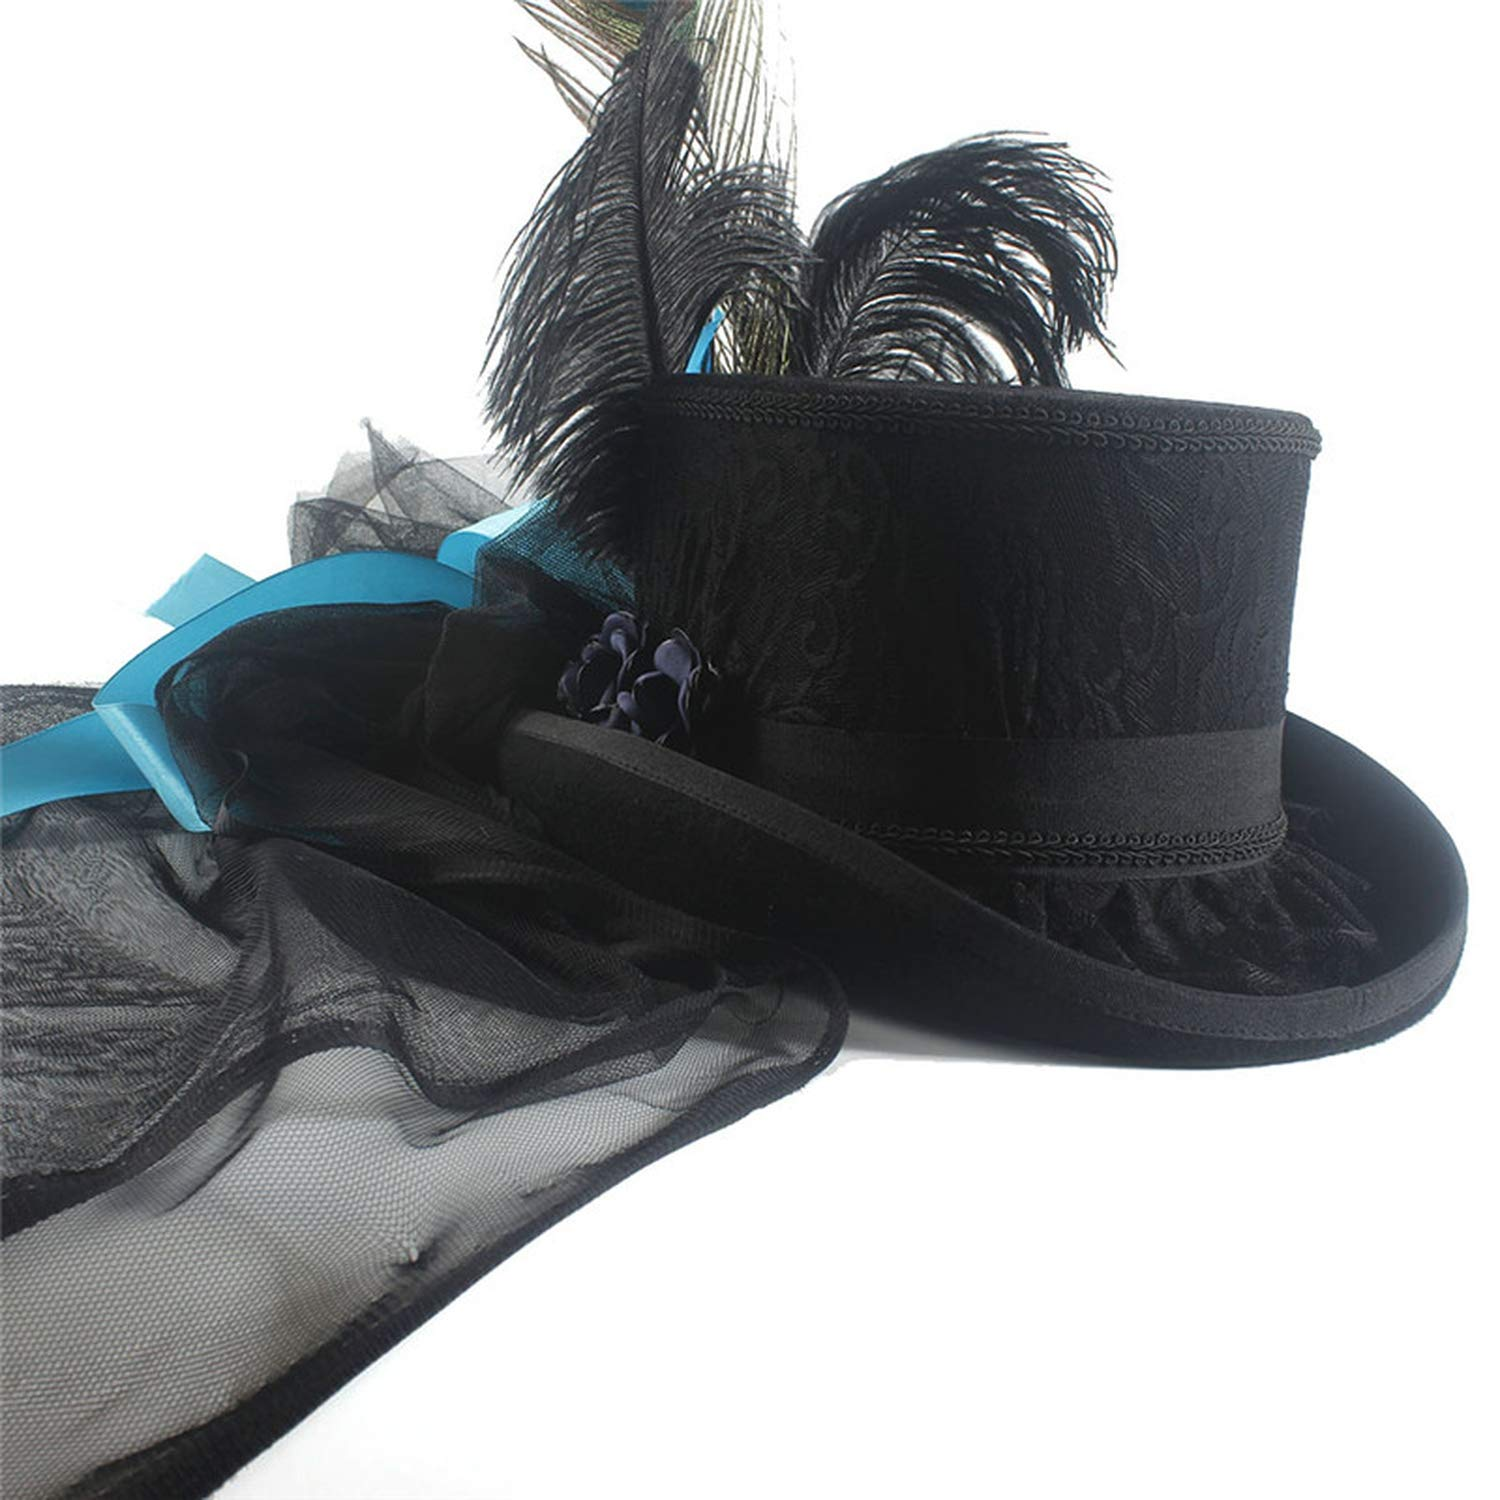 62285078257ba Black Wool Women Bride Steampunk Fedora Top Hat Lady Mesh Traditional  Beaver Feather Party Wedding Hat at Amazon Women s Clothing store